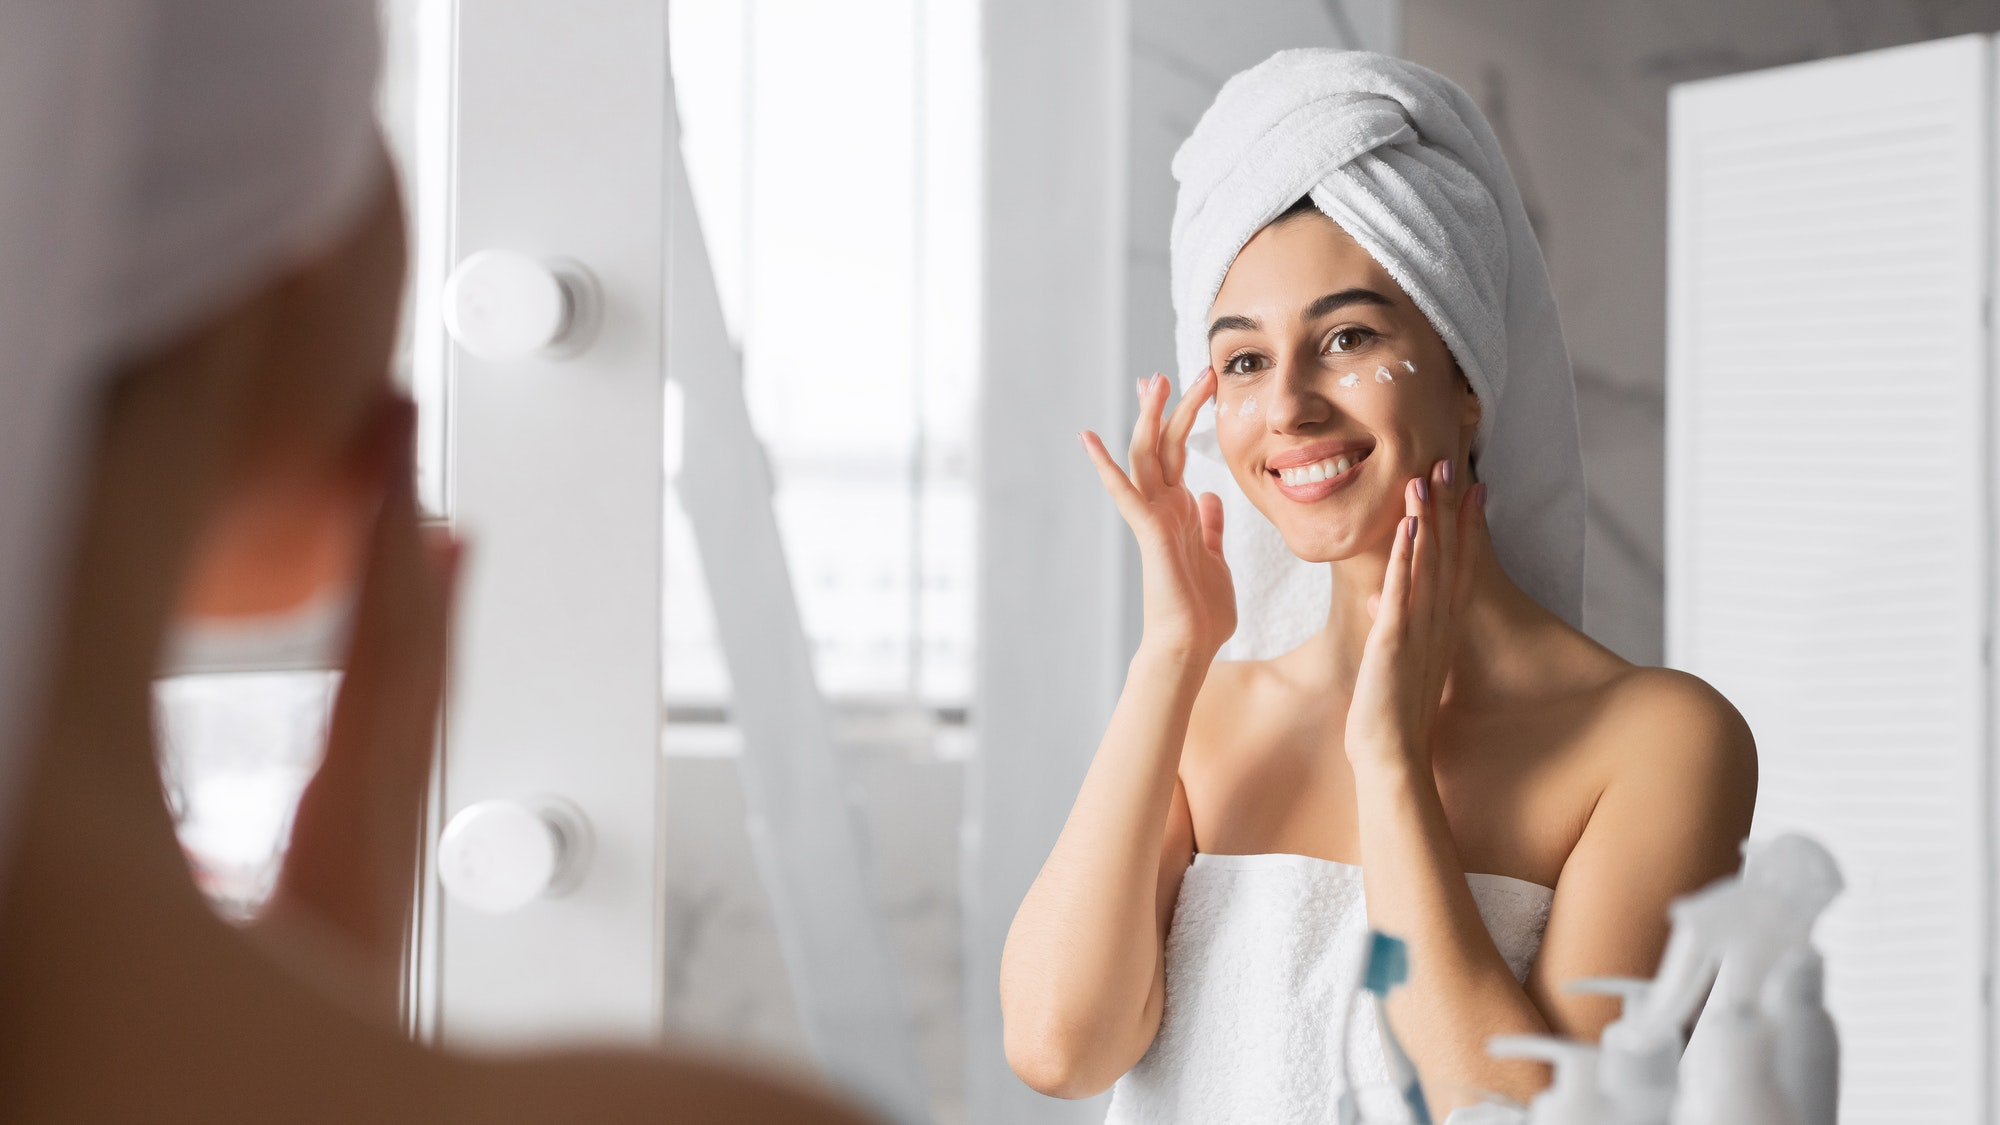 Woman Applying Eye Cream Taking Care Of Skin In Bathroom